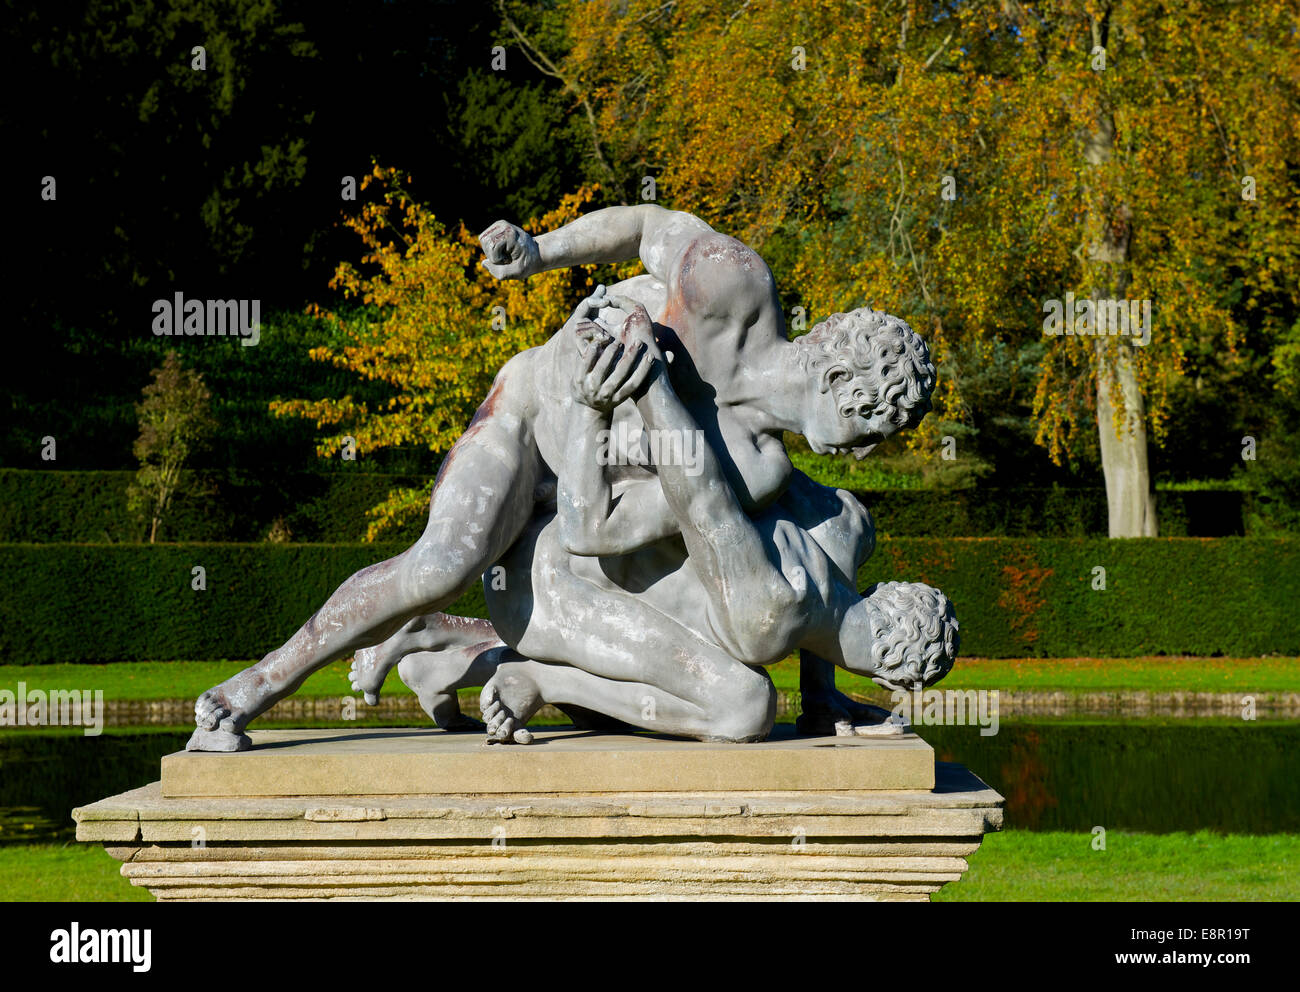 Statue of wrestlers at Studley Royal, near Ripon, North Yorkshire, England UK - Stock Image